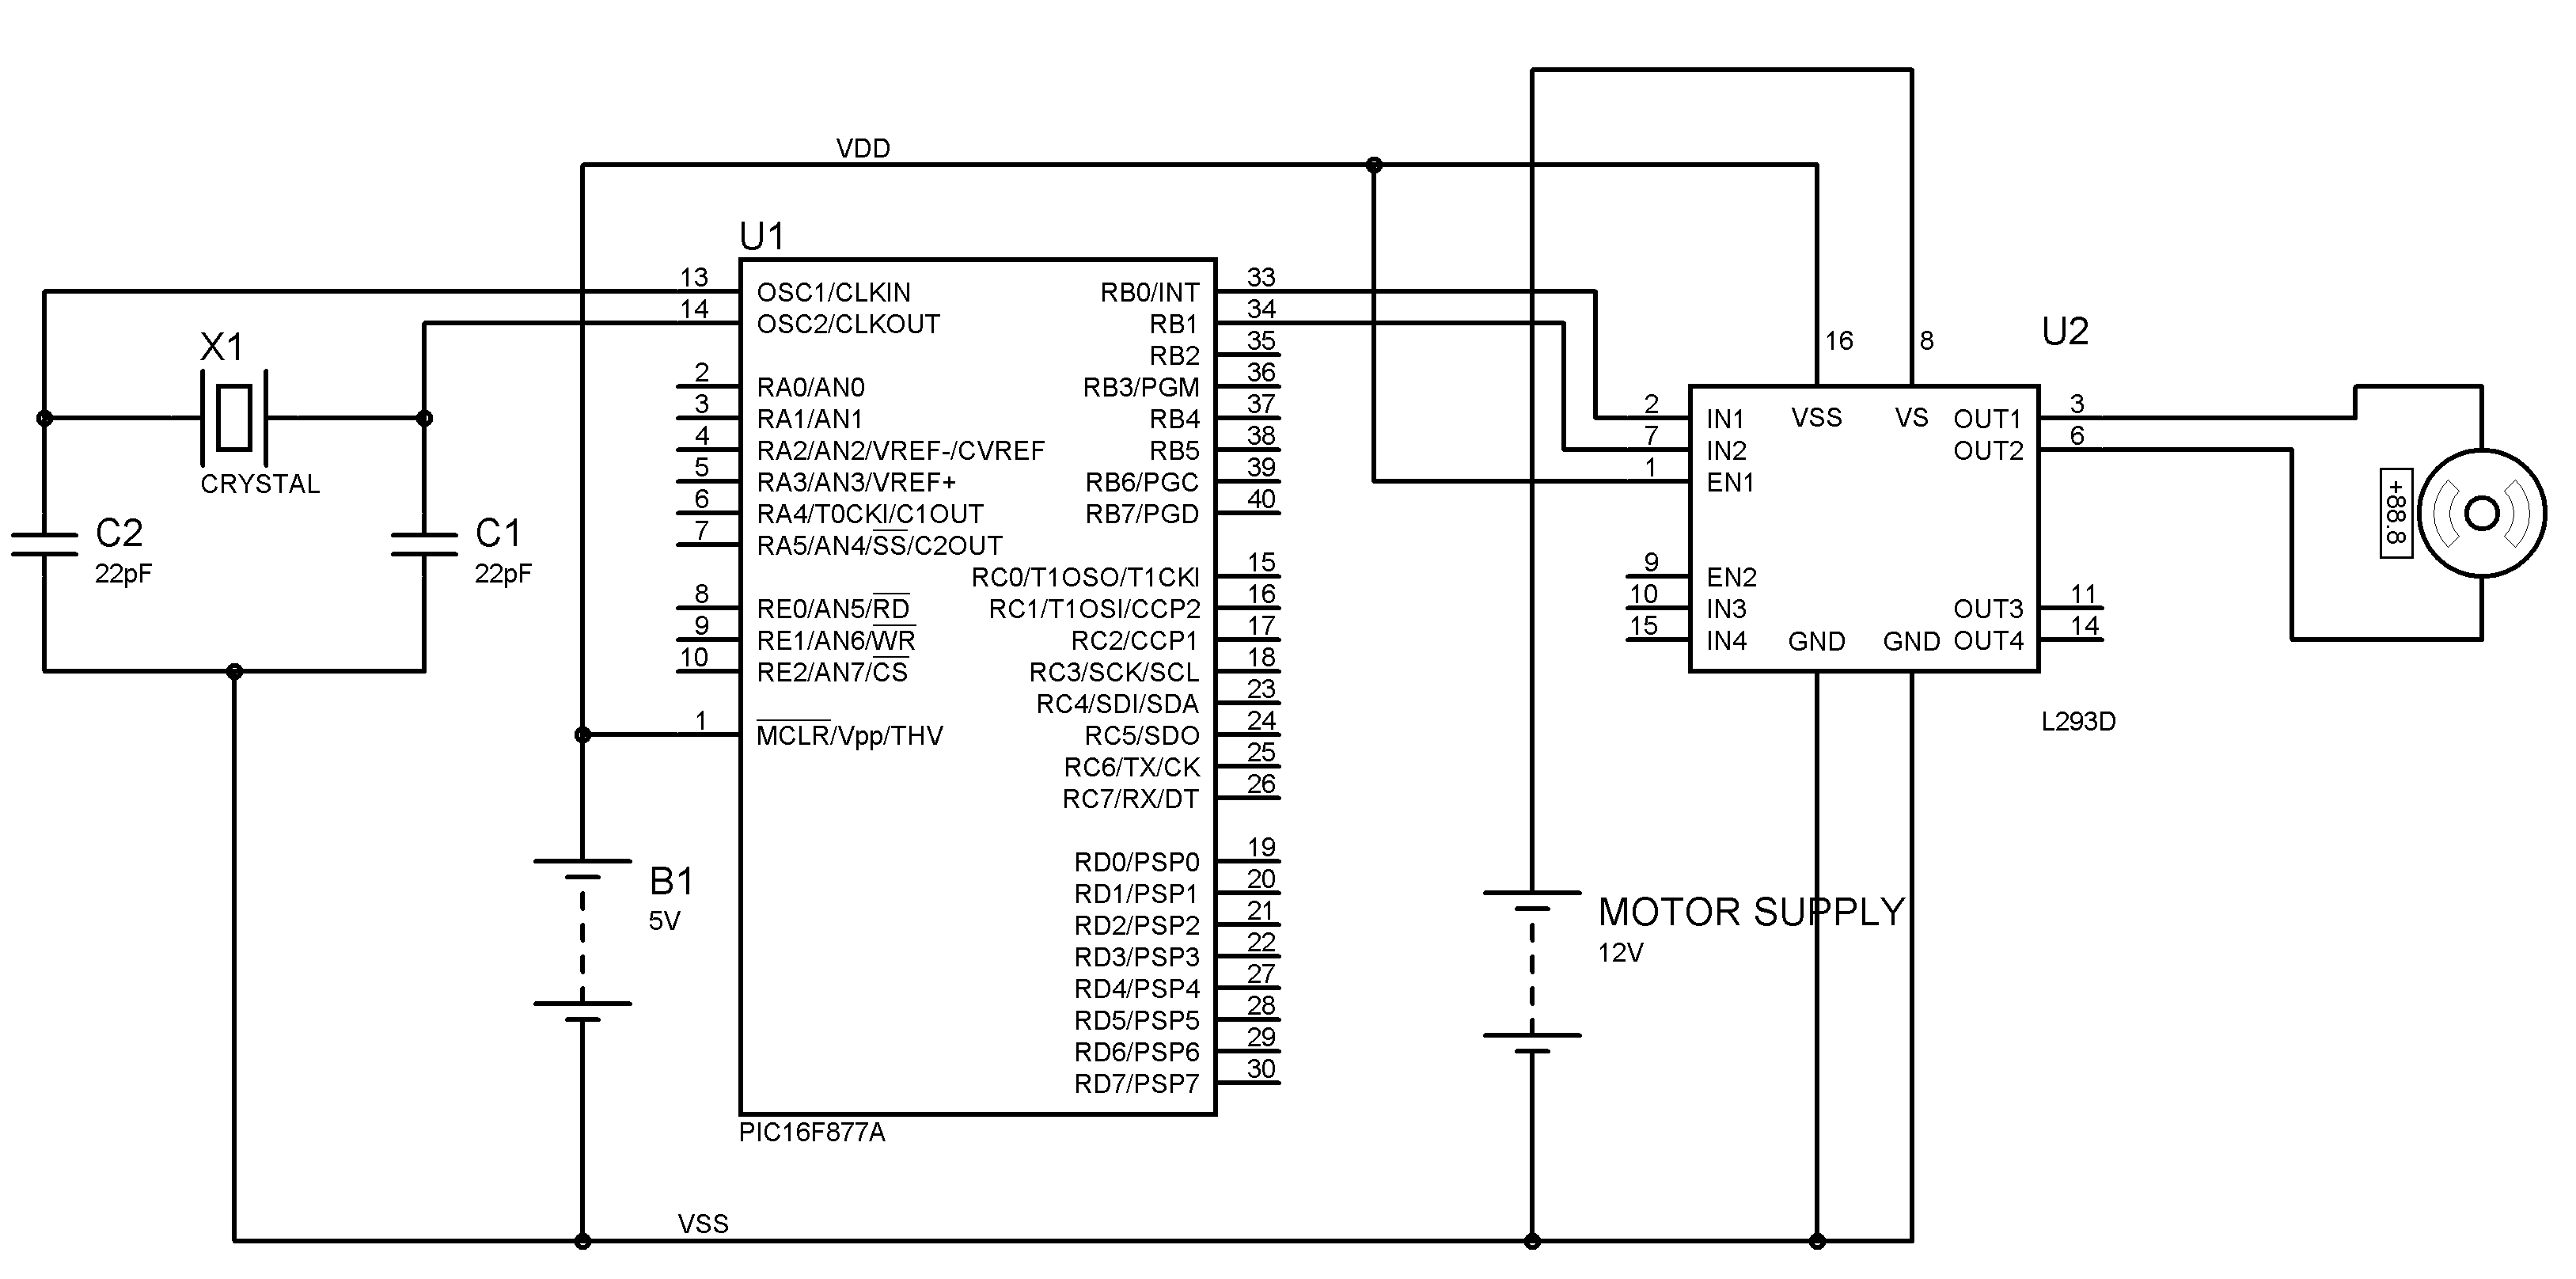 4 Wire Dc Motor Connection Diagram 34 Wiring Images Two Way Switching Schematic 3 Control Interfacing With Pic Microcontroller Using L293d Mikroc